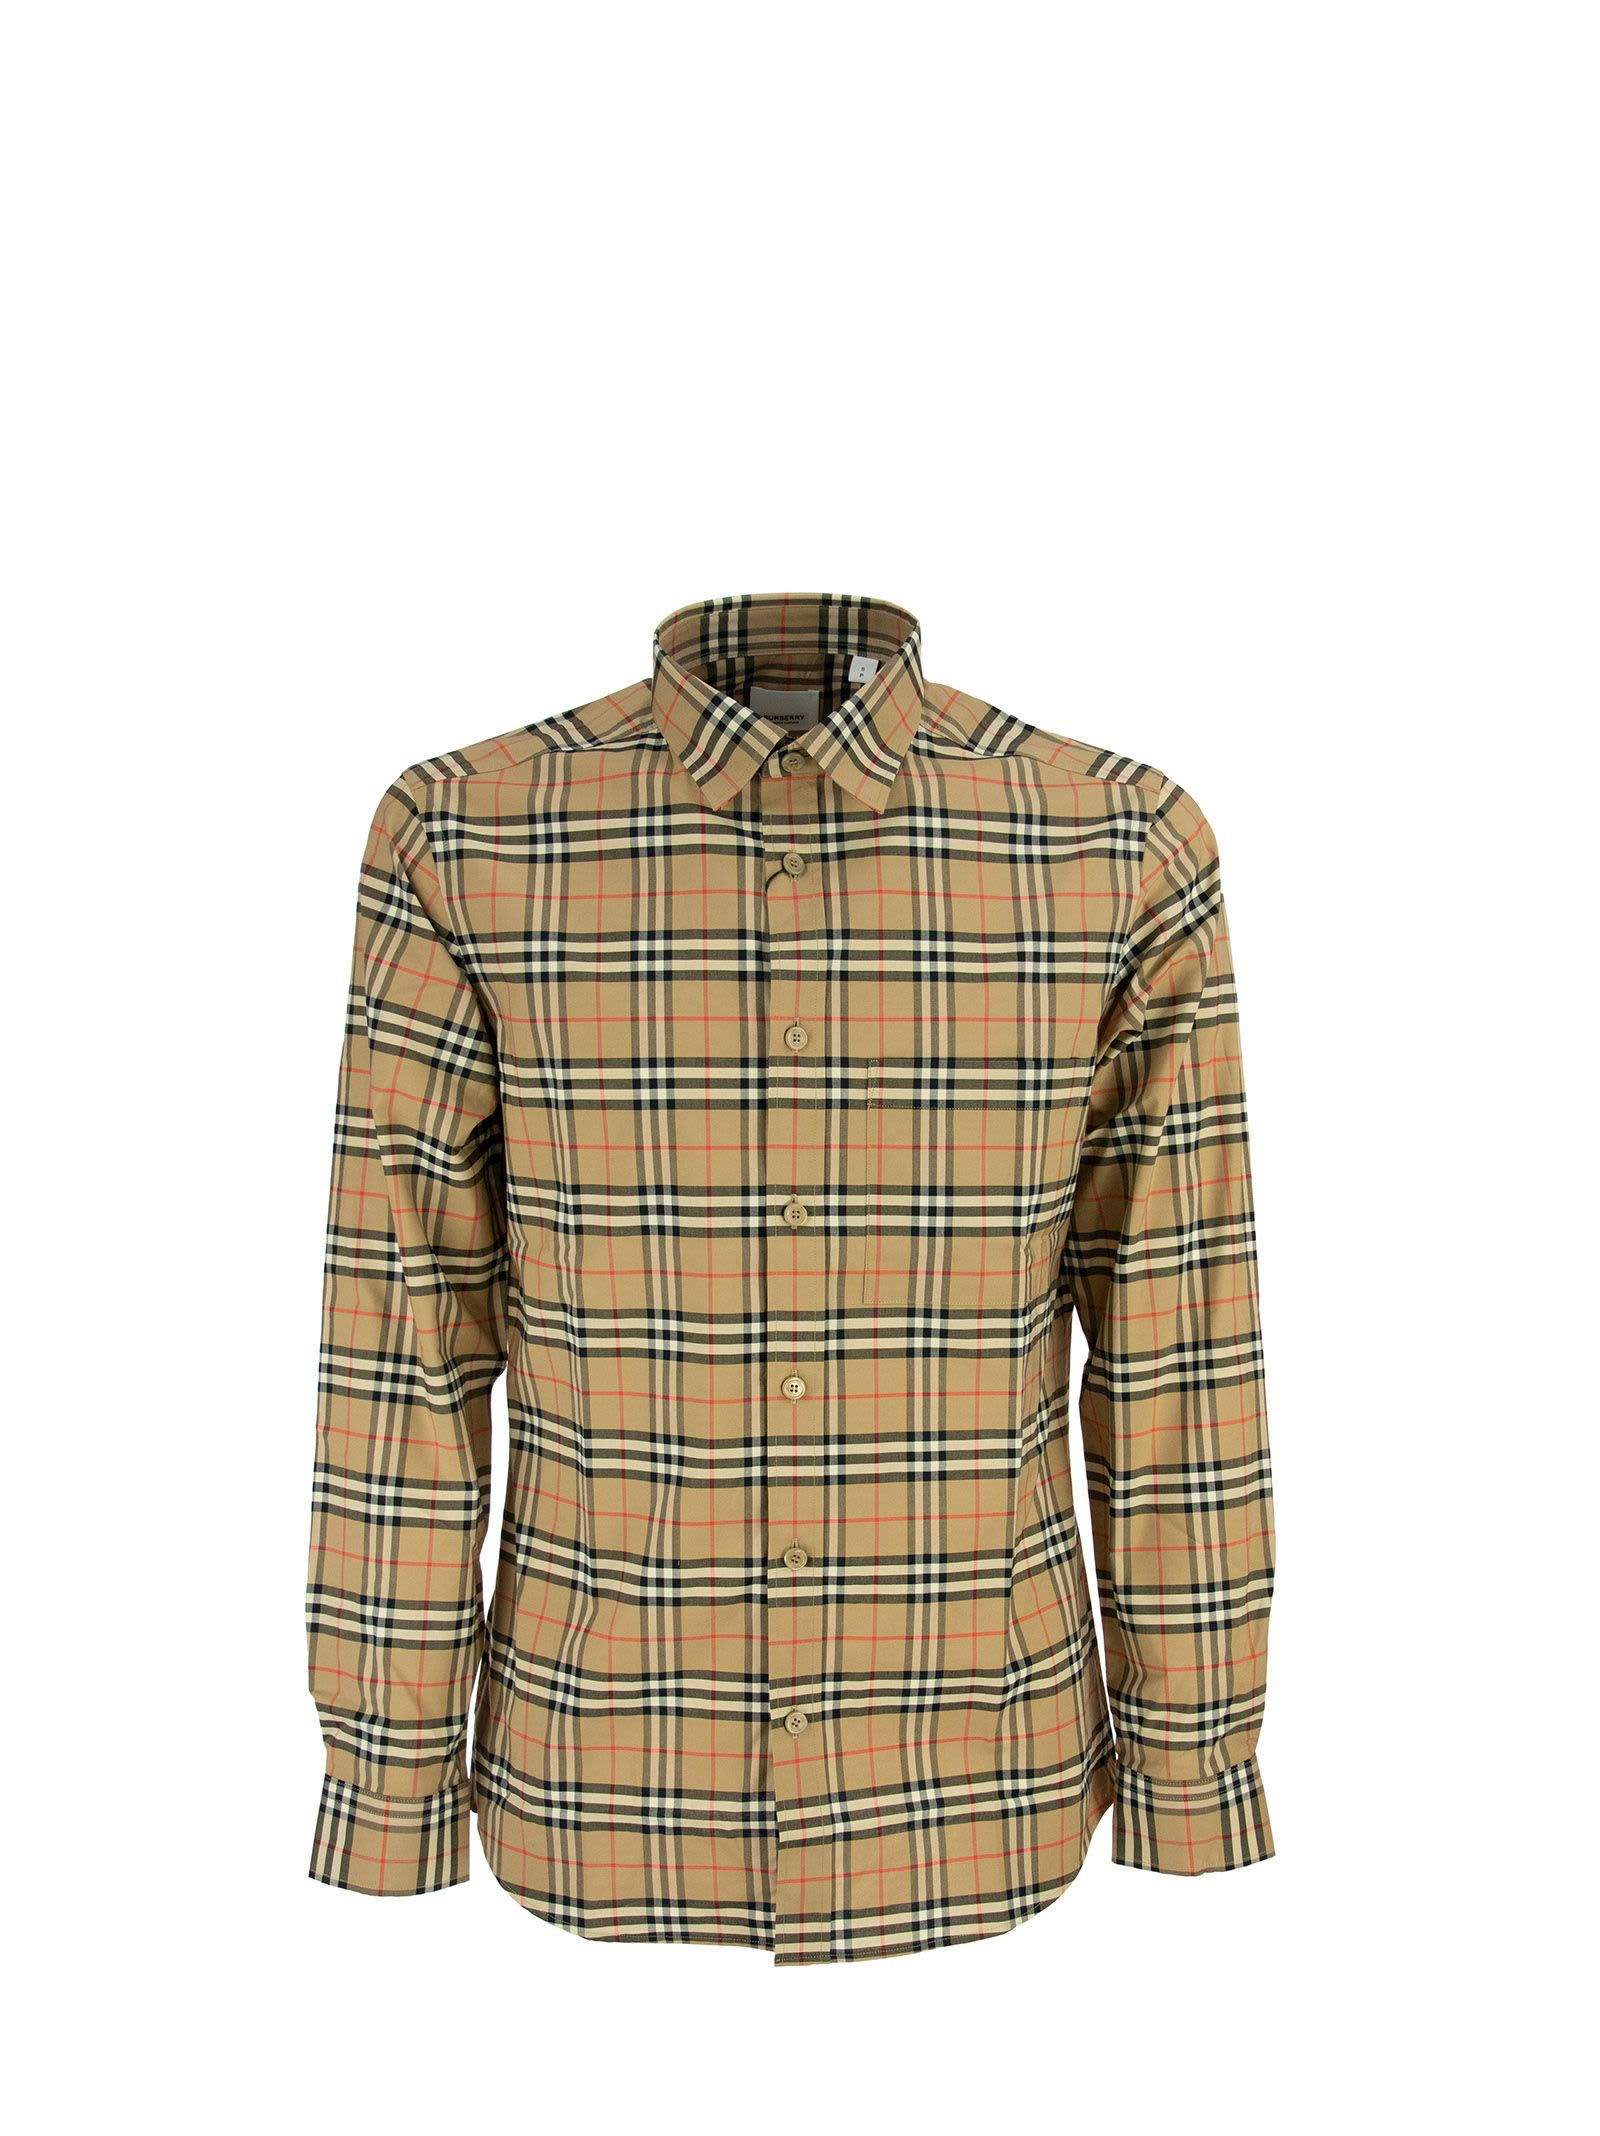 Burberry SMALL SCALE CHECK STRETCH COTTON SHIRT SIMPSON ARCHIVE BEIGE